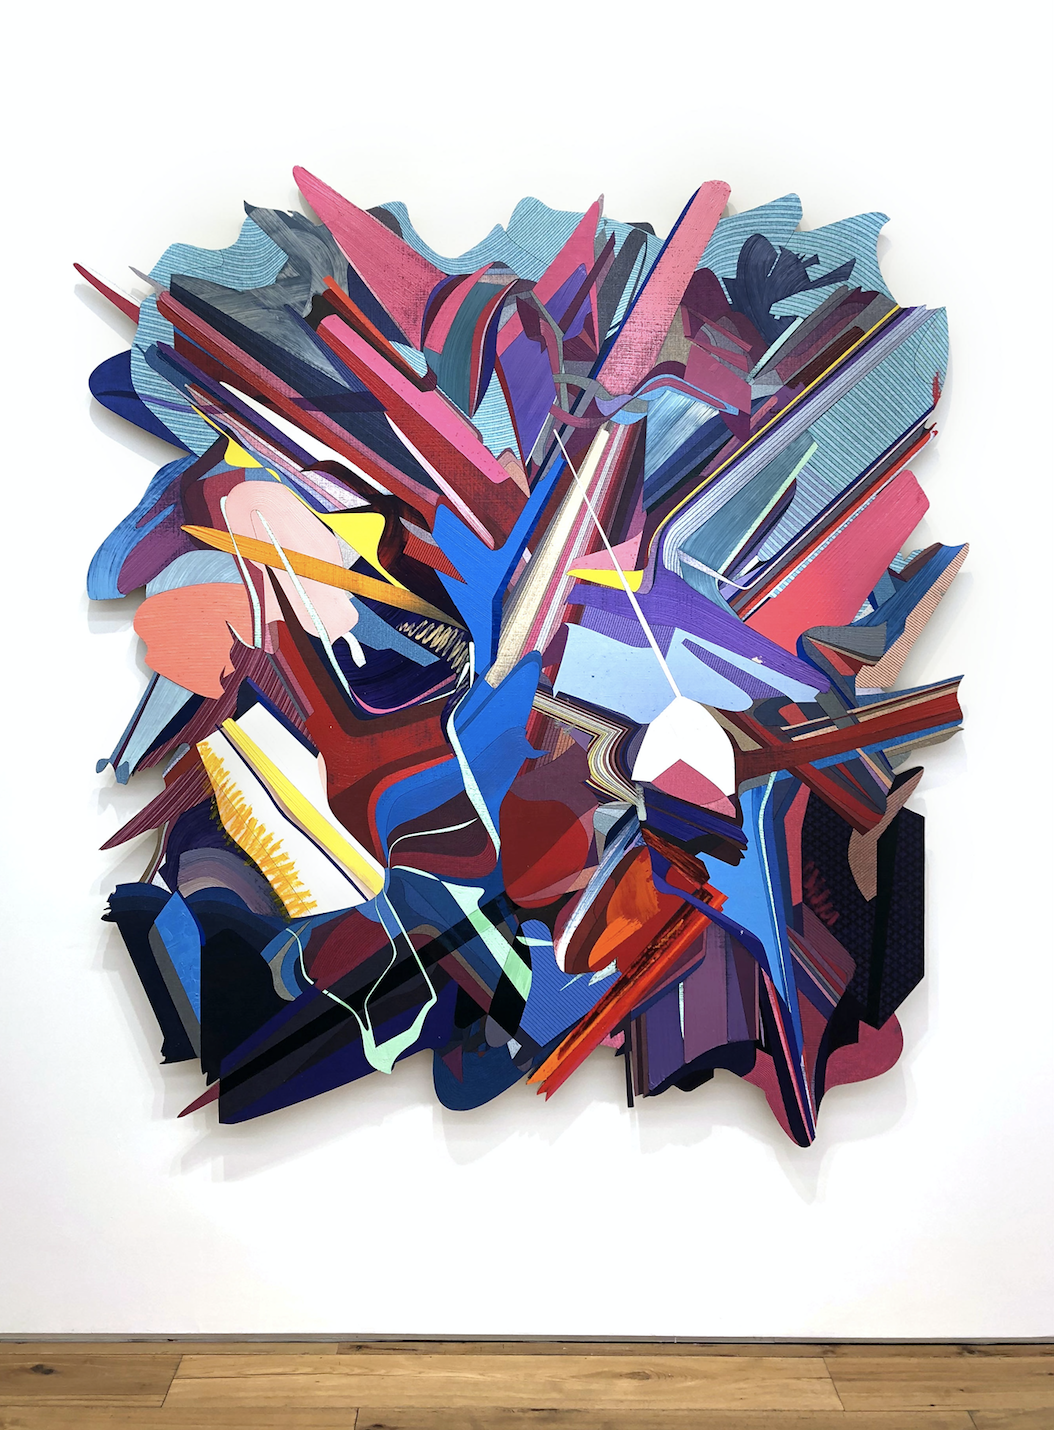 Duck Soup Jacaranda, 2020 Oil and acrylic on linen mounted on panel 78.8 x 72 in (200 x 183 cm) 2020 Marc Straus Gallery